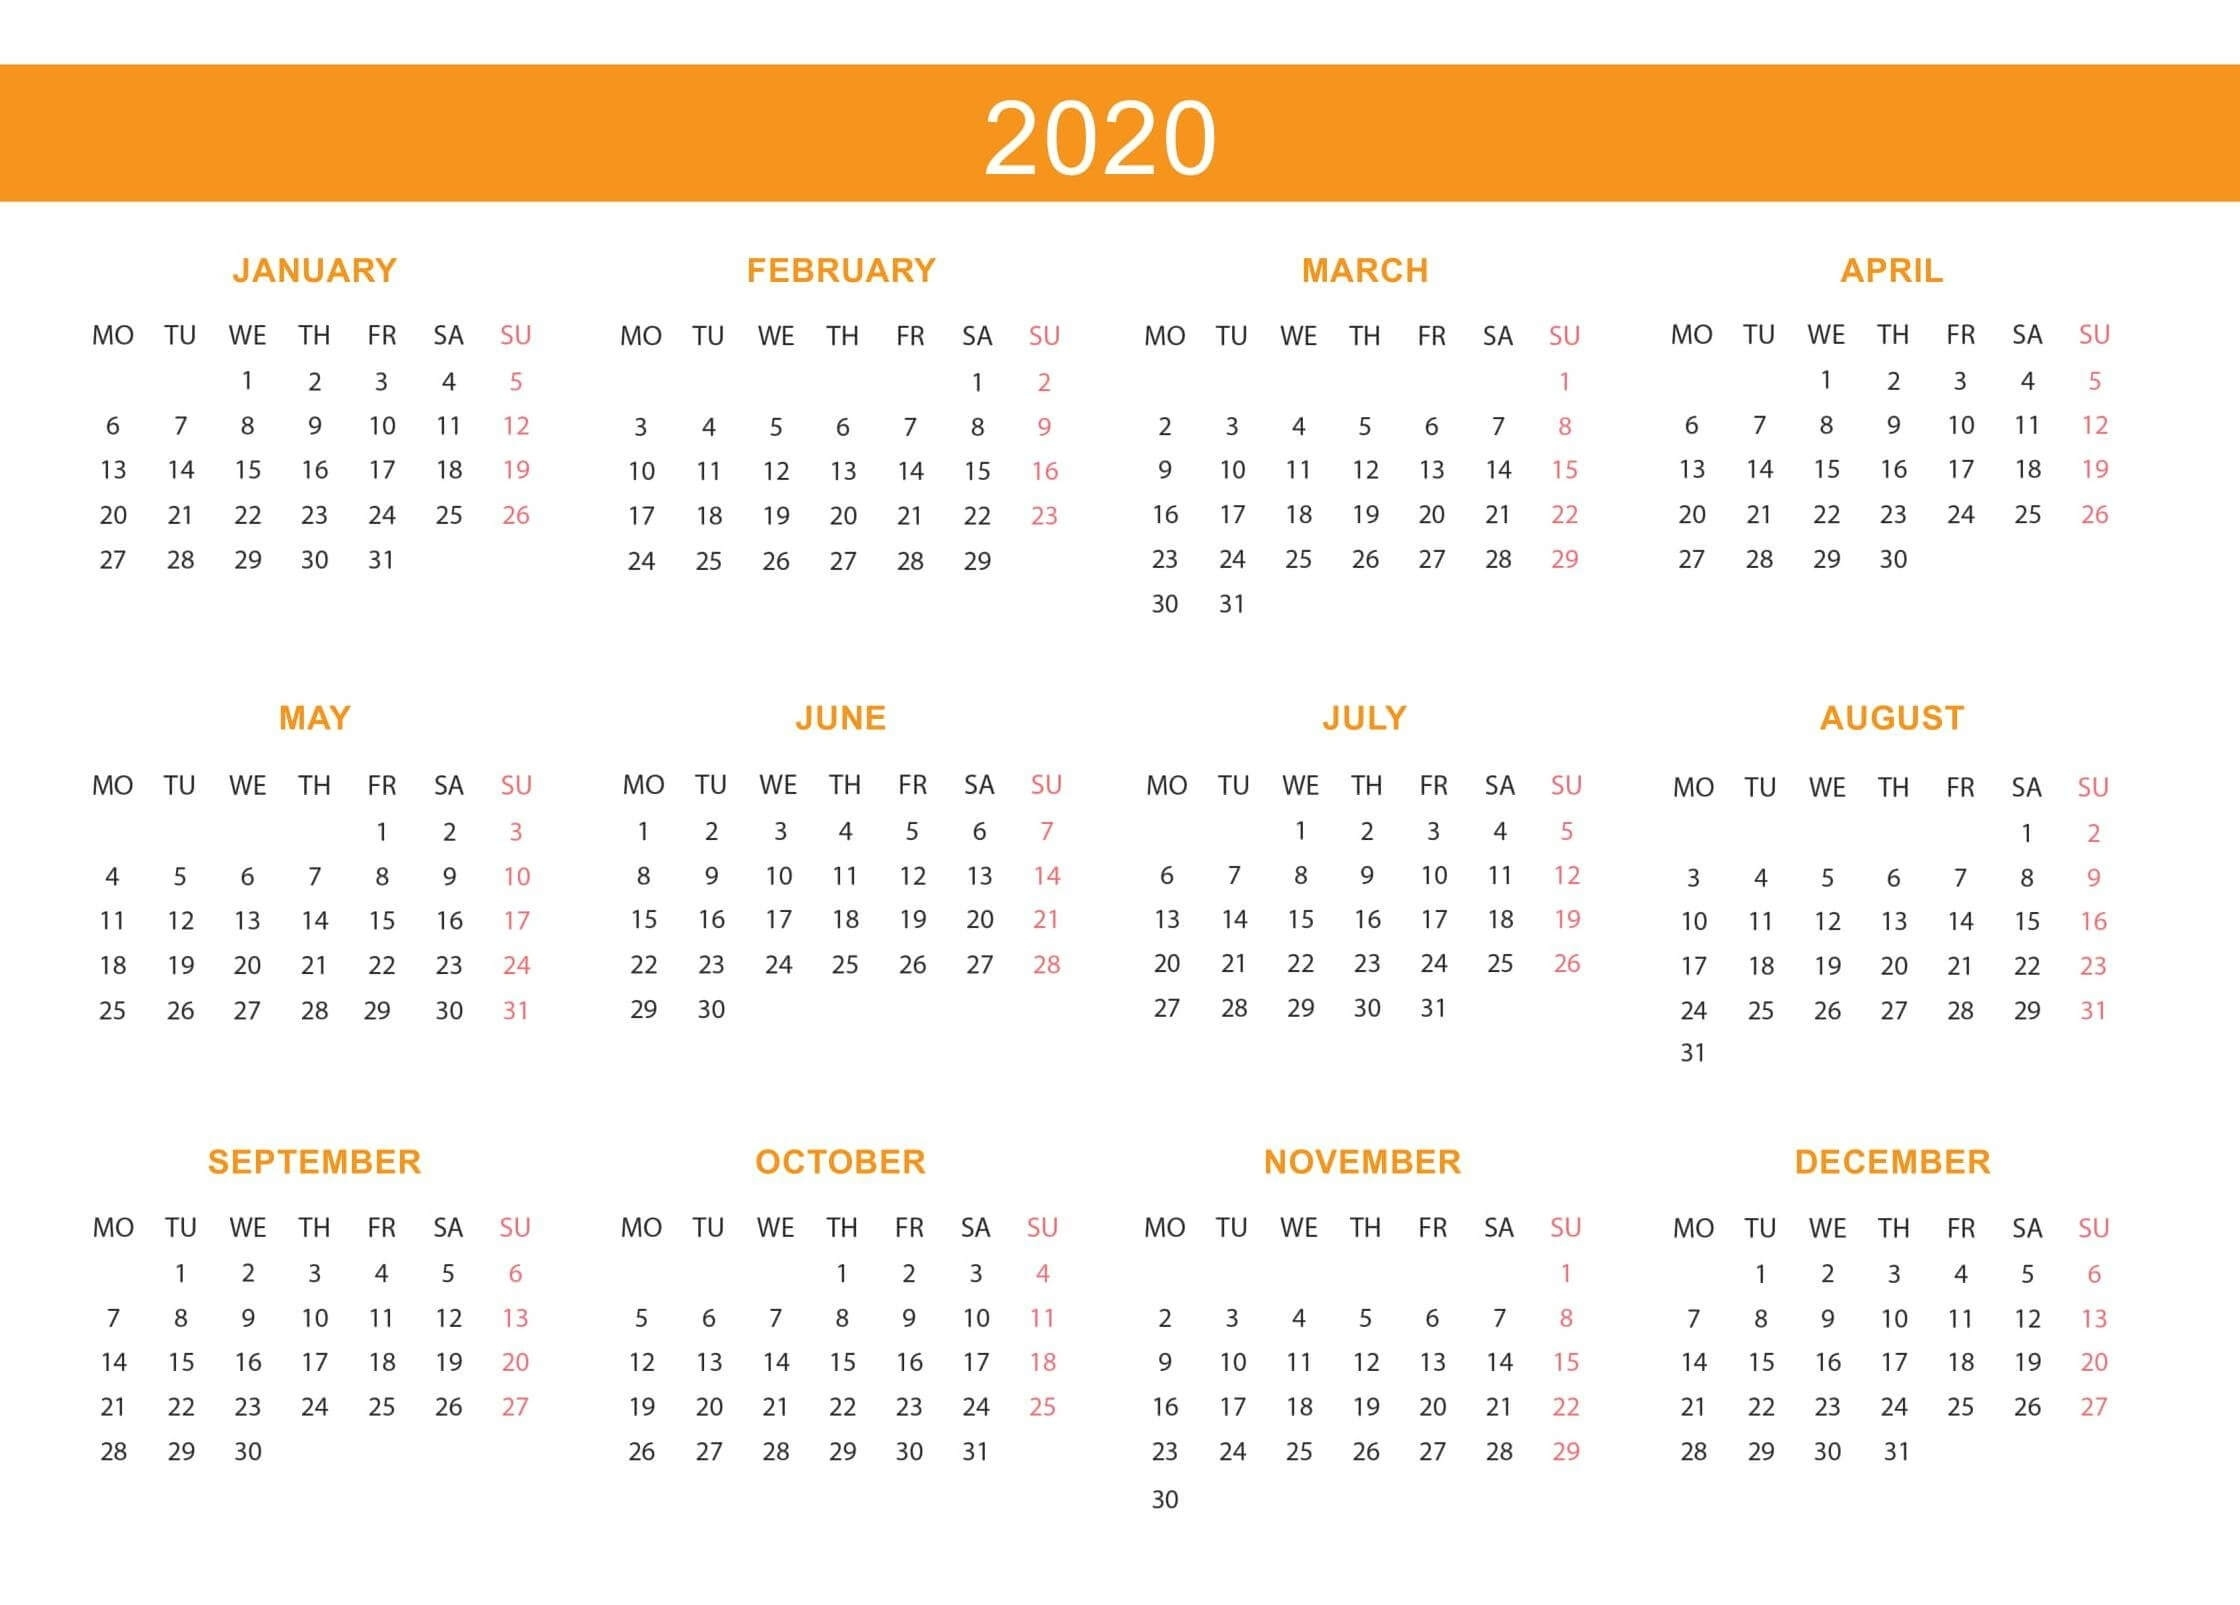 Free Yearly Calendar 2020 With Notes - 2019 Calendars For Year 2020 Calender - South Africa